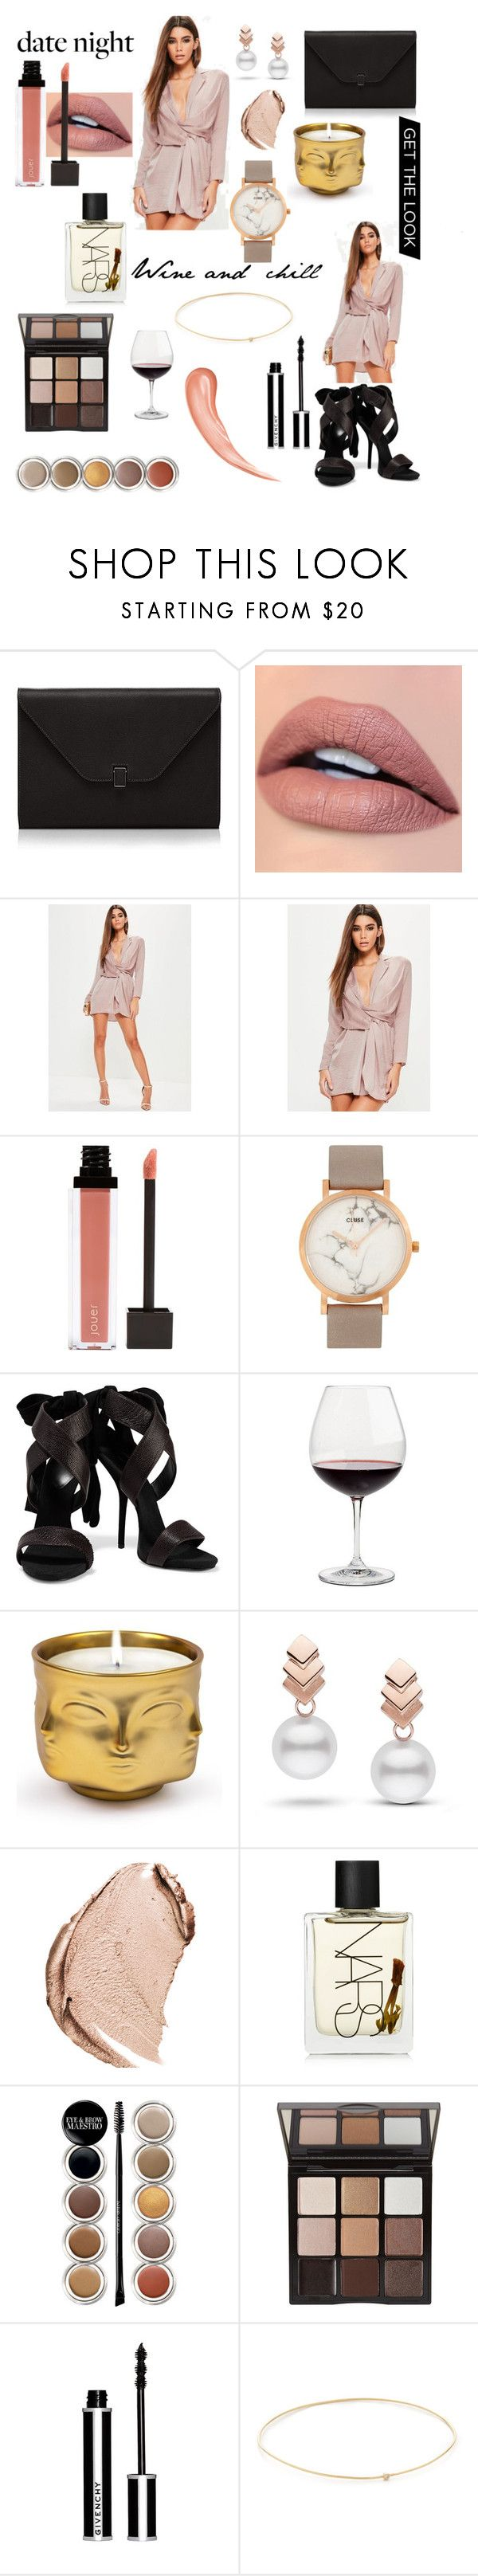 """""""Date night w/ my babe"""" by anamariahodinet on Polyvore featuring Valextra, Missguided, Jouer, CLUSE, Giuseppe Zanotti, Riedel, Jonathan Adler, Escalier, Christian Dior and NARS Cosmetics"""